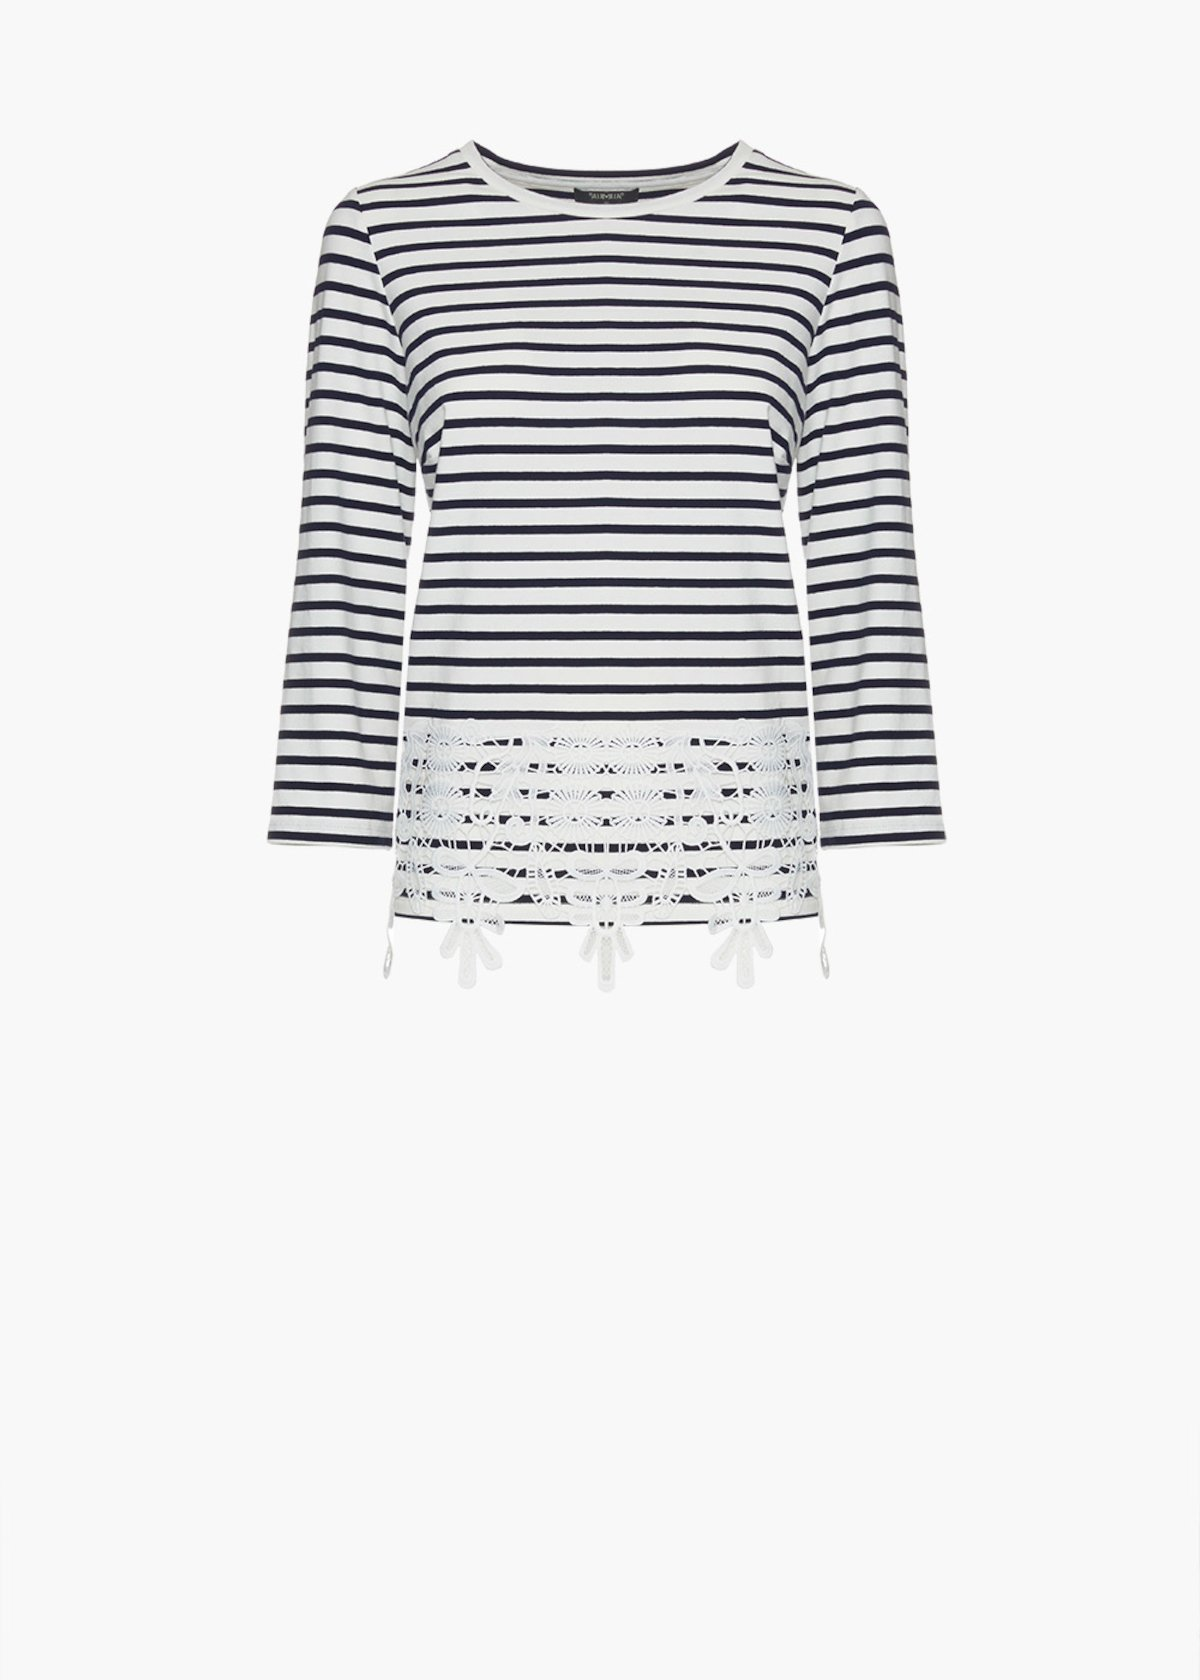 Shelby stripes fantasy t-shirt with lace detail on the bottom - Blue / White Stripes - Woman - Category image